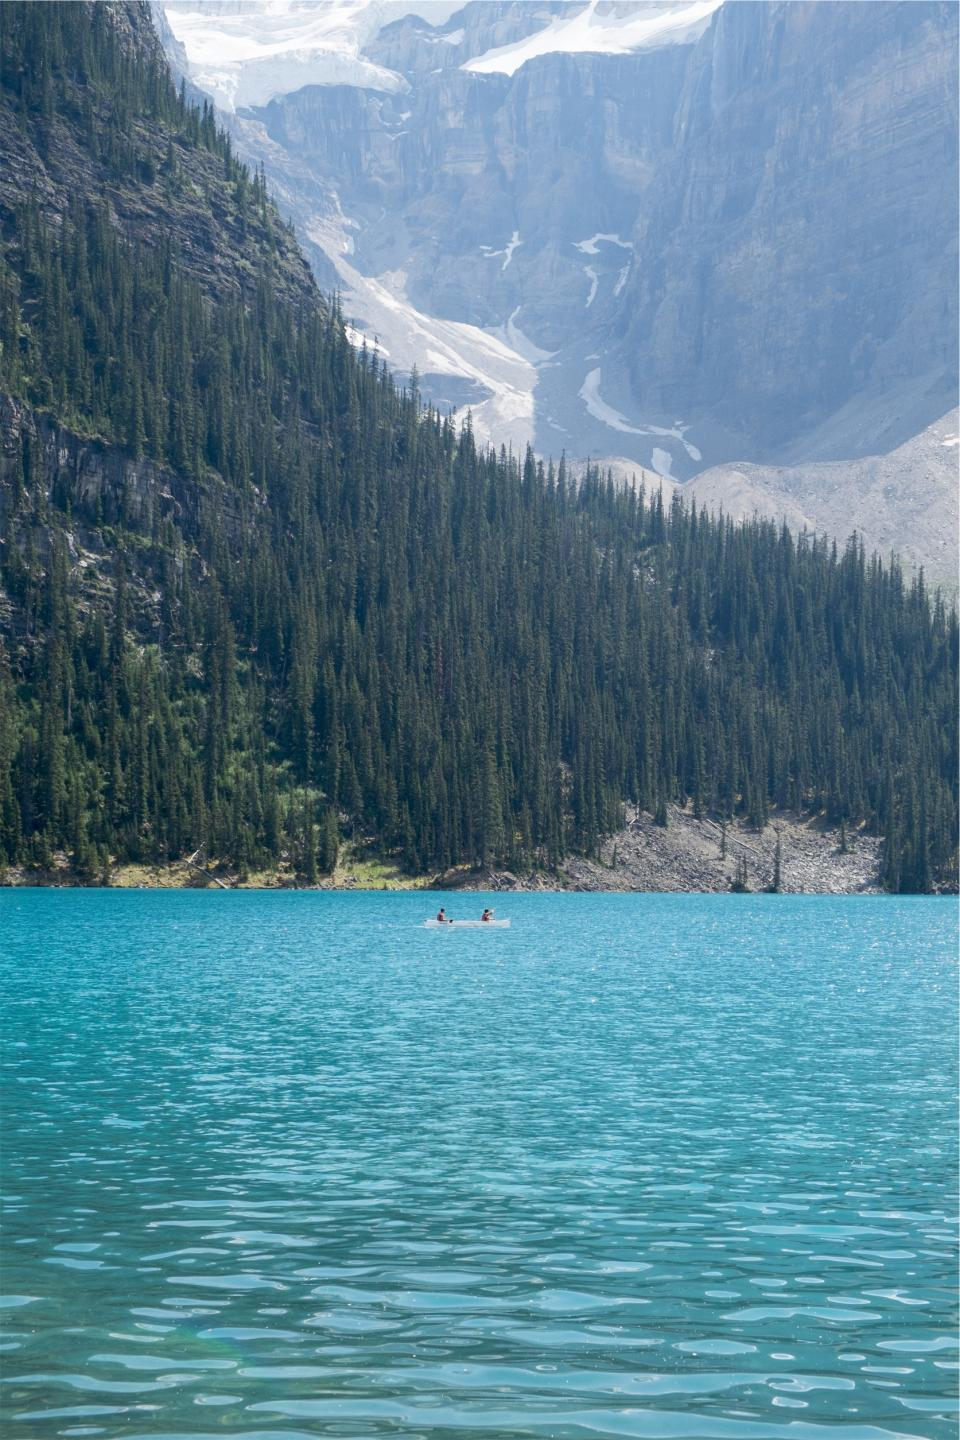 landscape blue lake water trees forest mountains hills cliffs nature